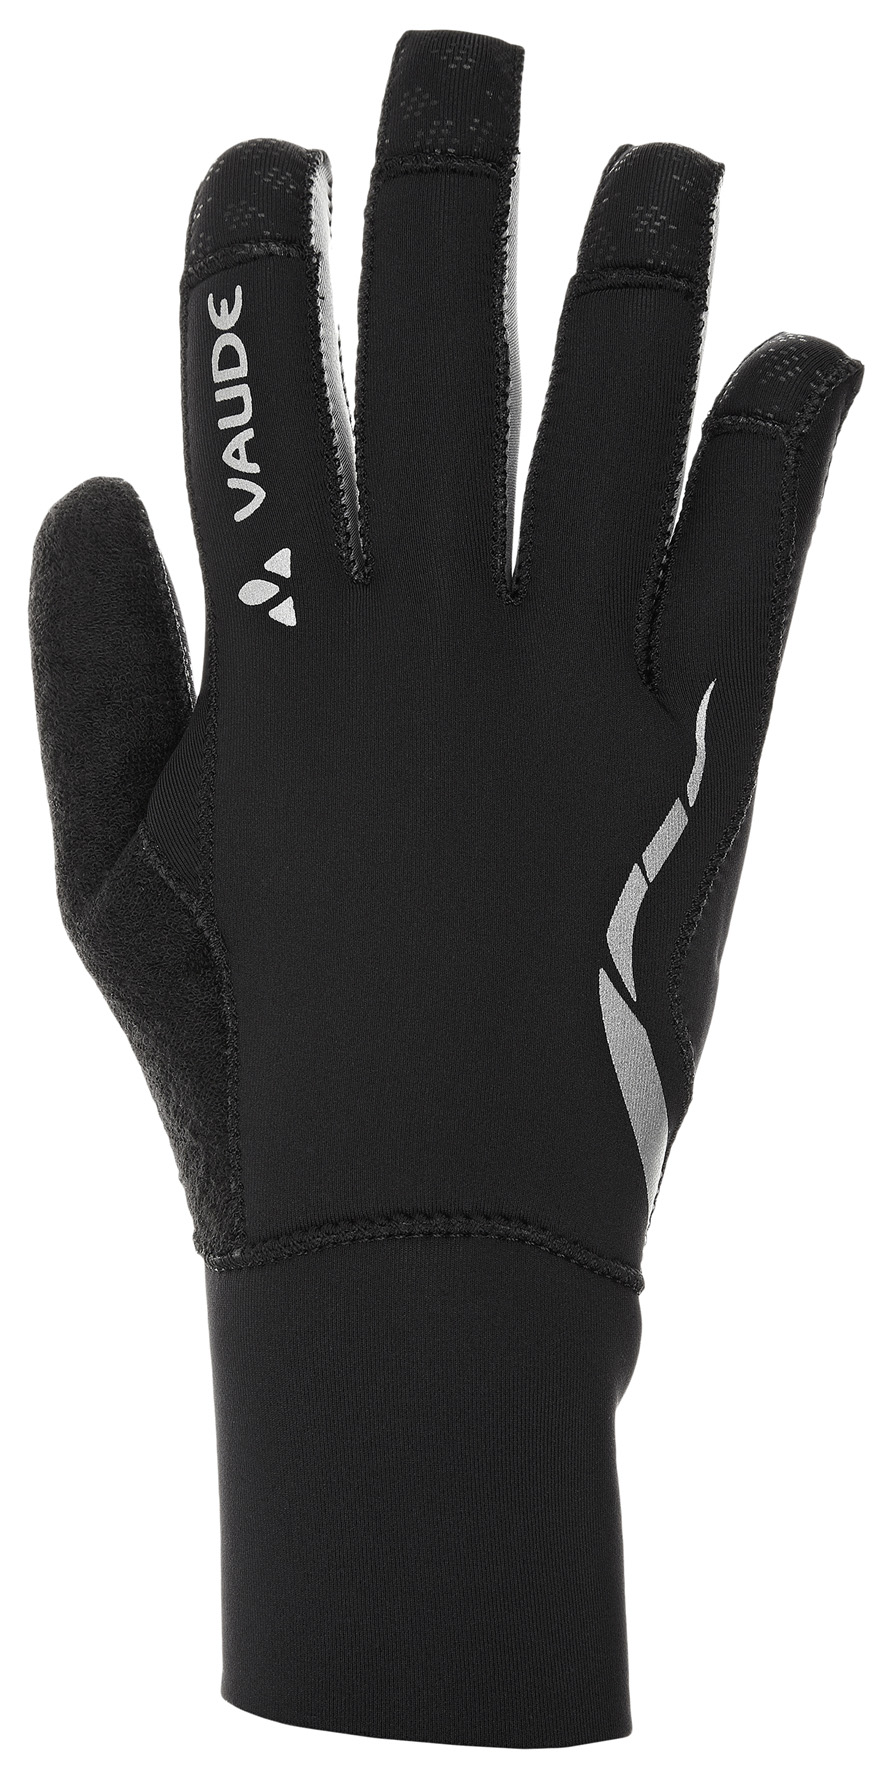 VAUDE Chronos Gloves black Größe 11 - schneider-sports